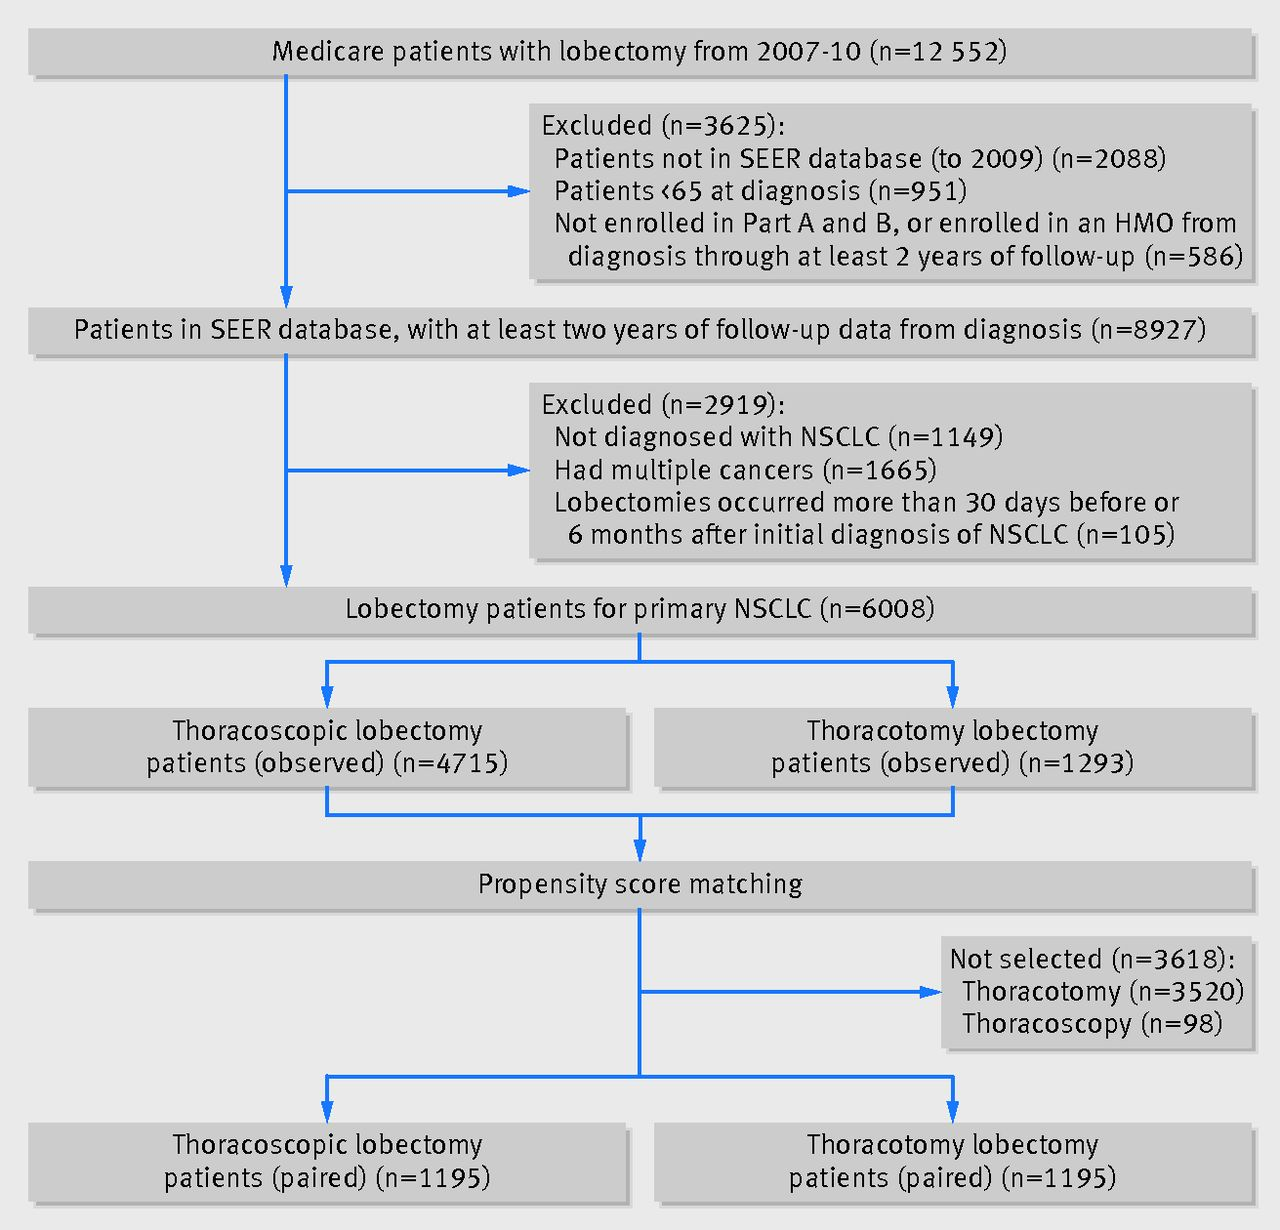 Long term survival with thoracoscopic versus open lobectomy fig 1 patient selection flow chart hmohealth maintenance organization nsclcnon small cell lung cancer seersurveillance epidemiology and end results ccuart Image collections